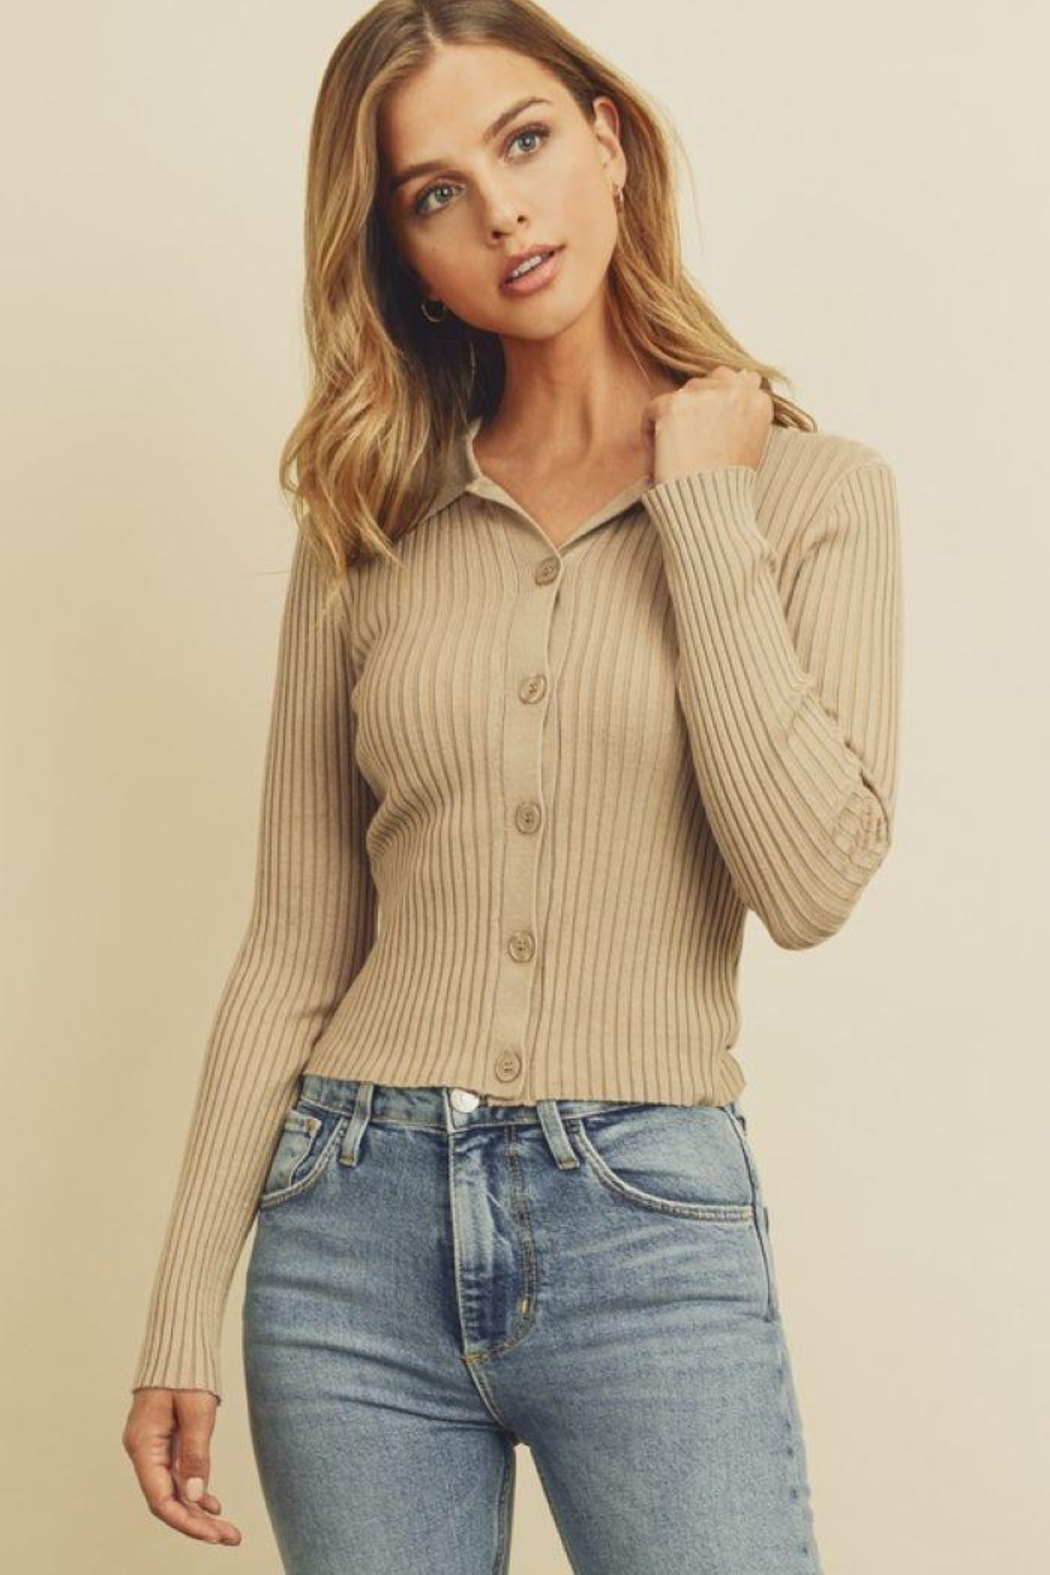 dress forum Collared Button-Down Knitted Top - Front Cropped Image